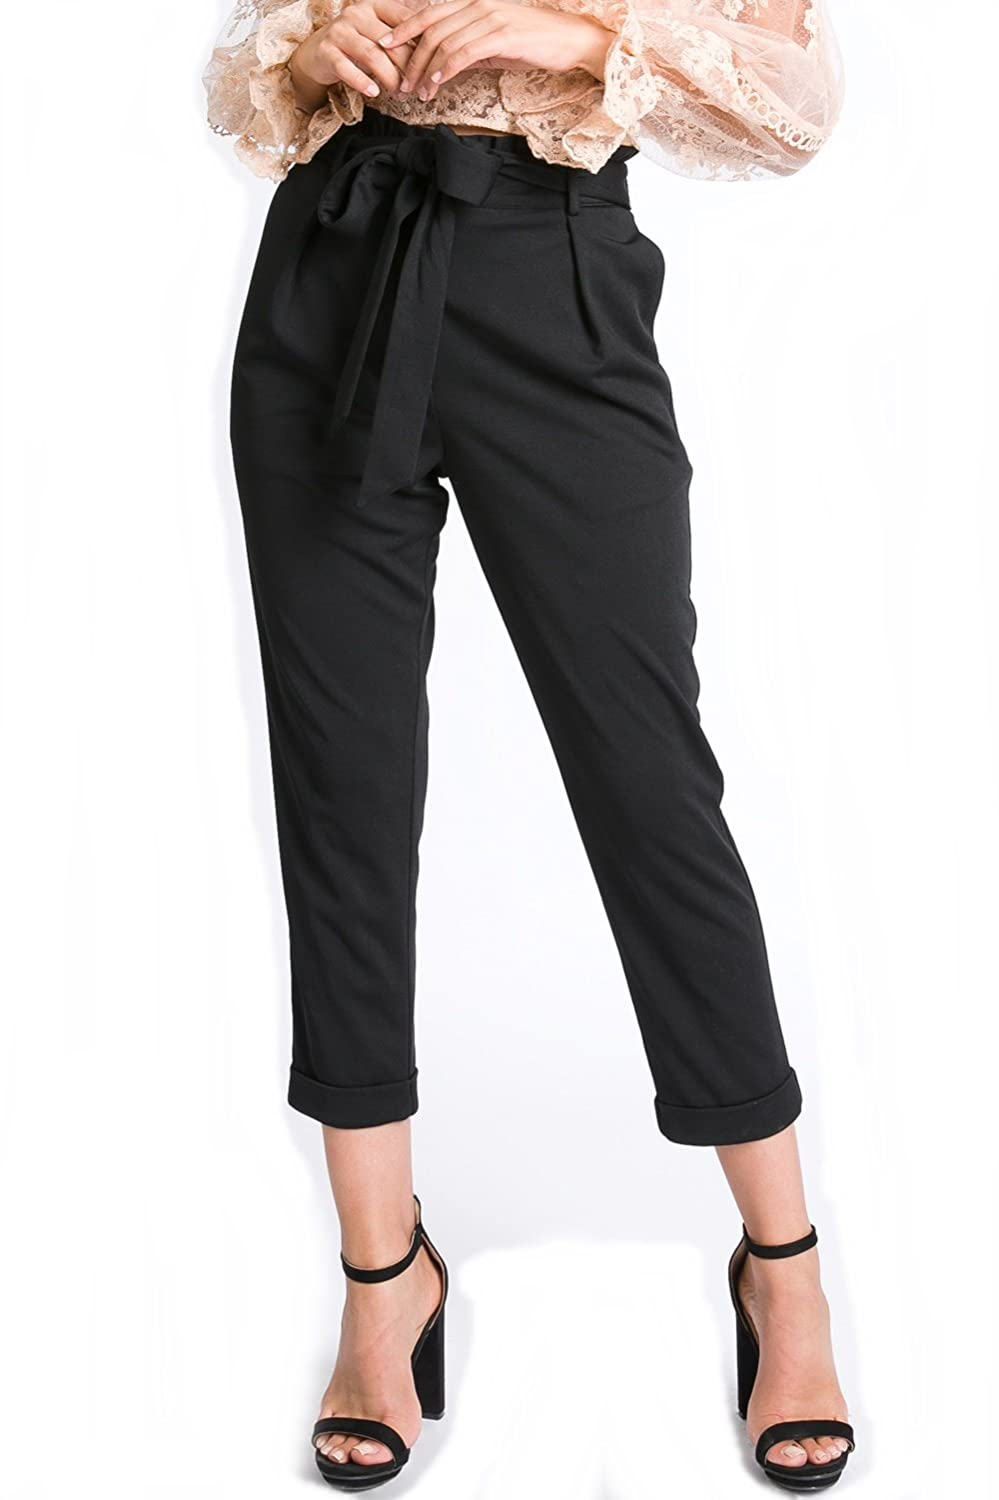 8b7860a5b7c Top 10 wholesale Ankle Pants - Chinabrands.com